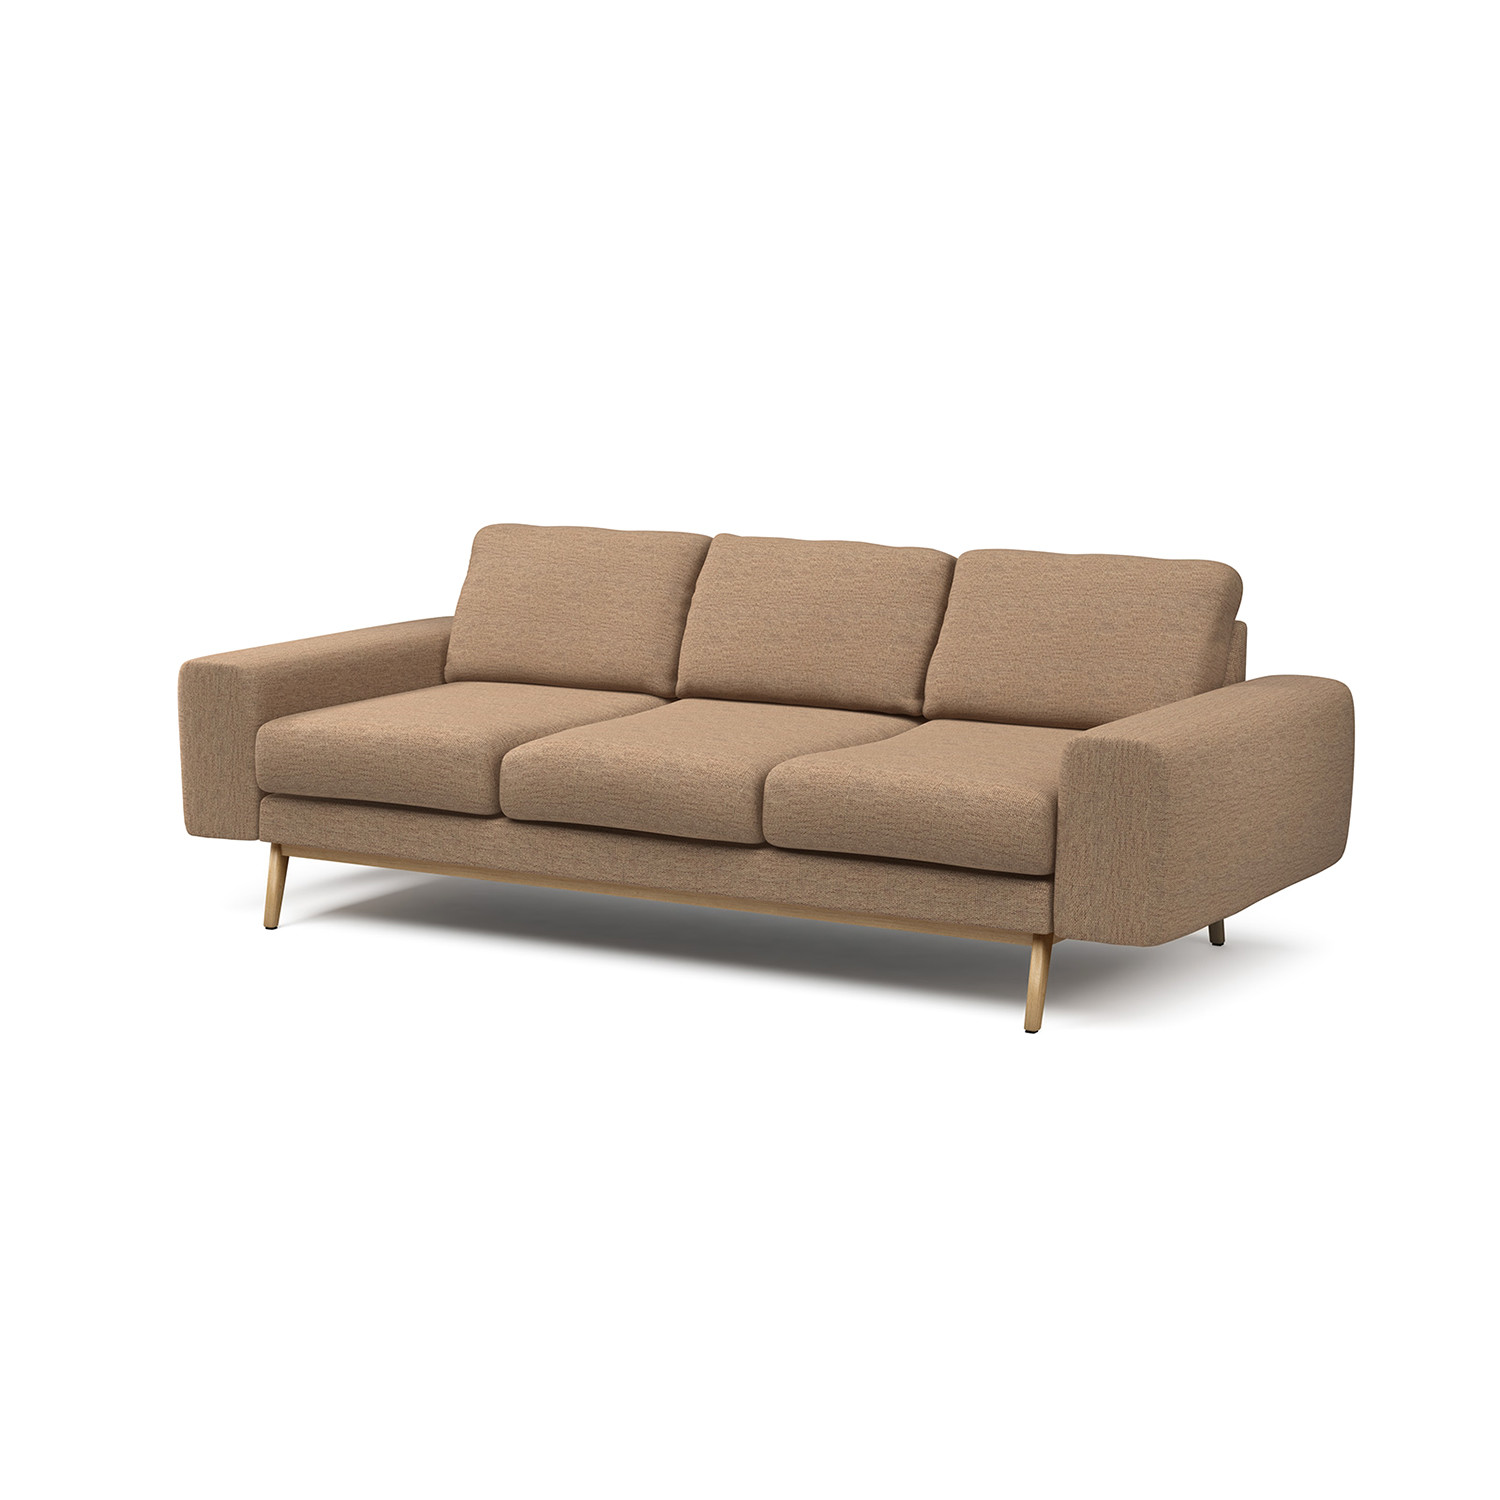 bright sofa buchannan microfiber sectional with reversible chaise anders red urbn touch of modern